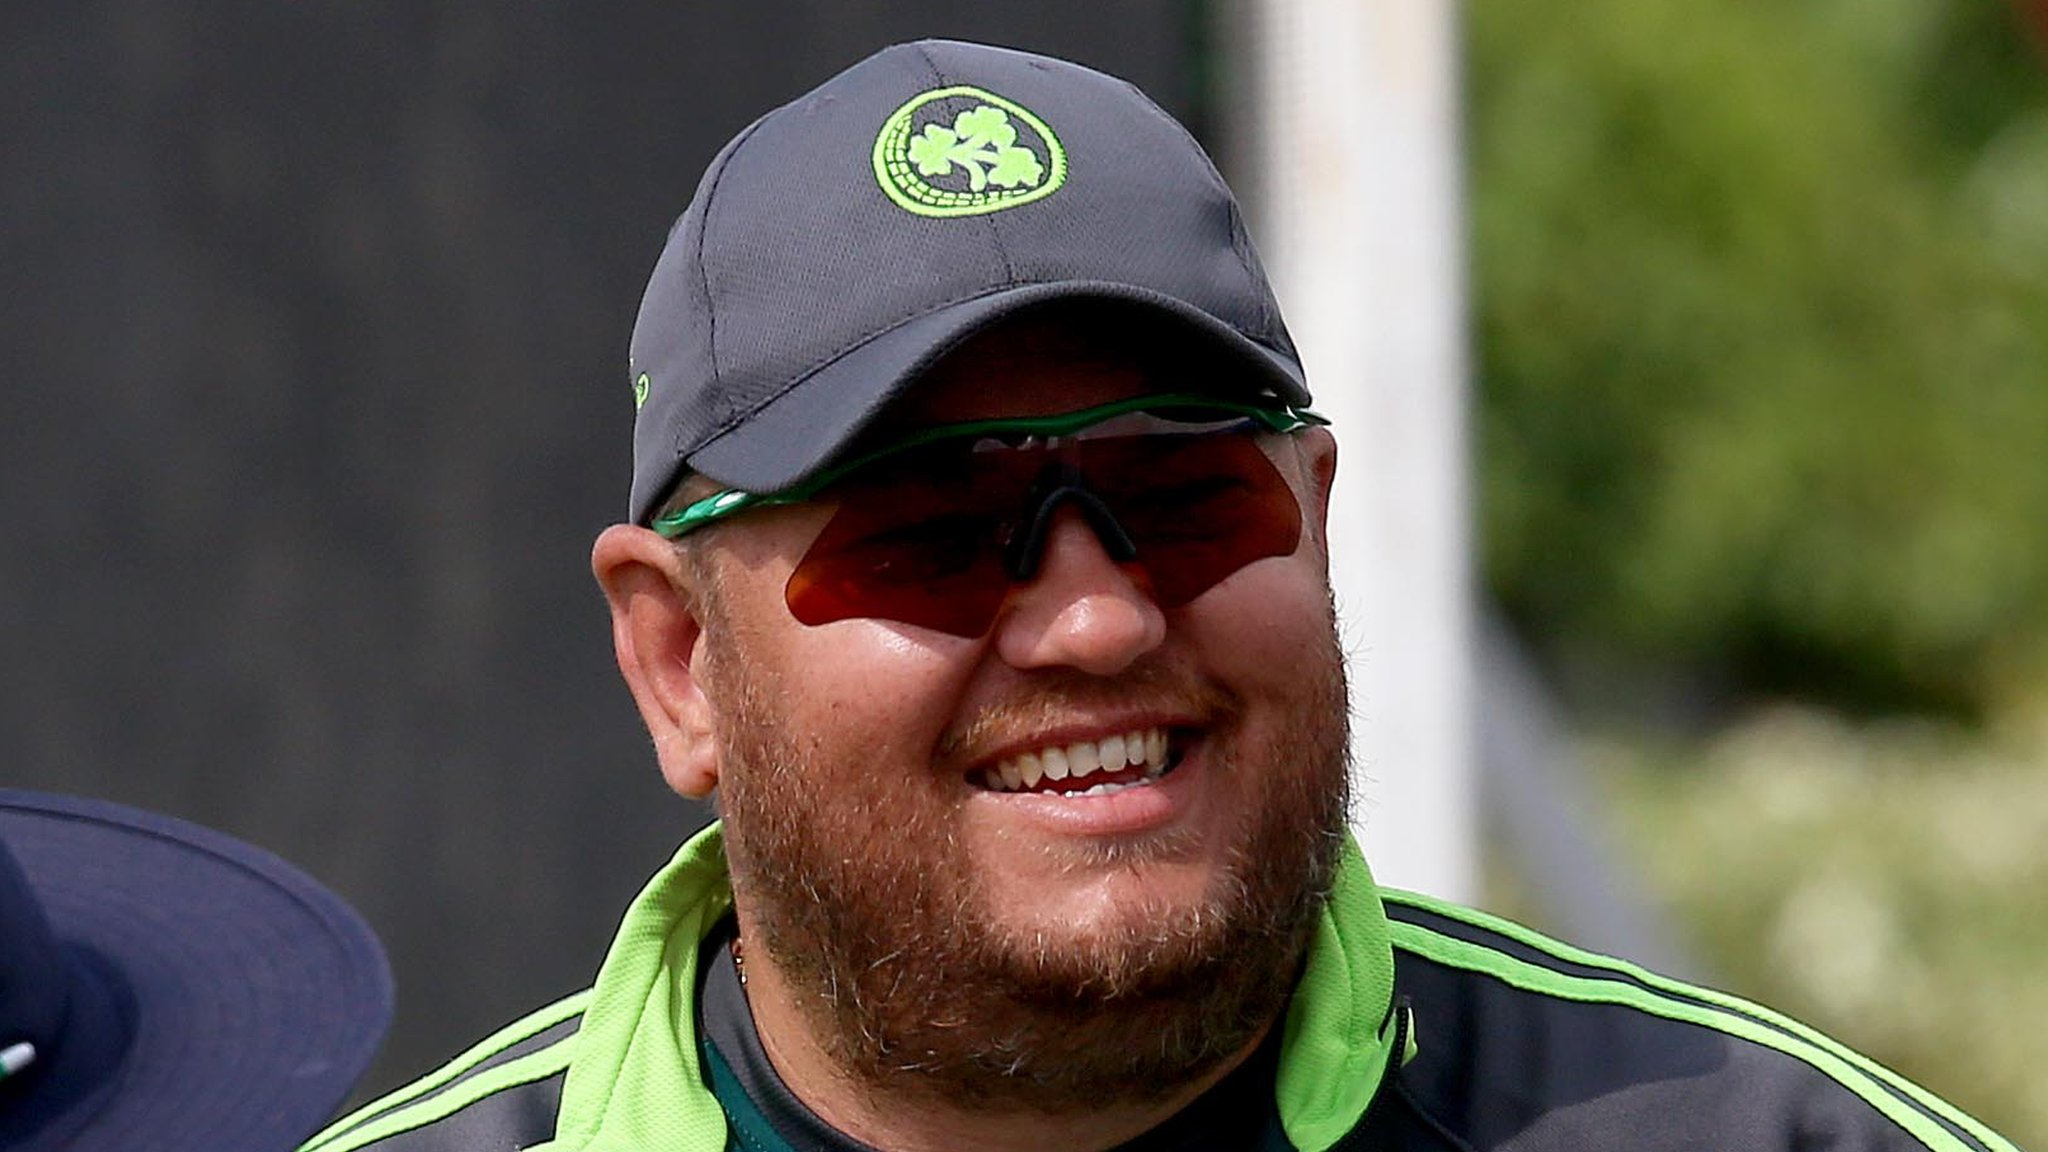 Ireland Women's head coach Aaron Hamilton to leave his role